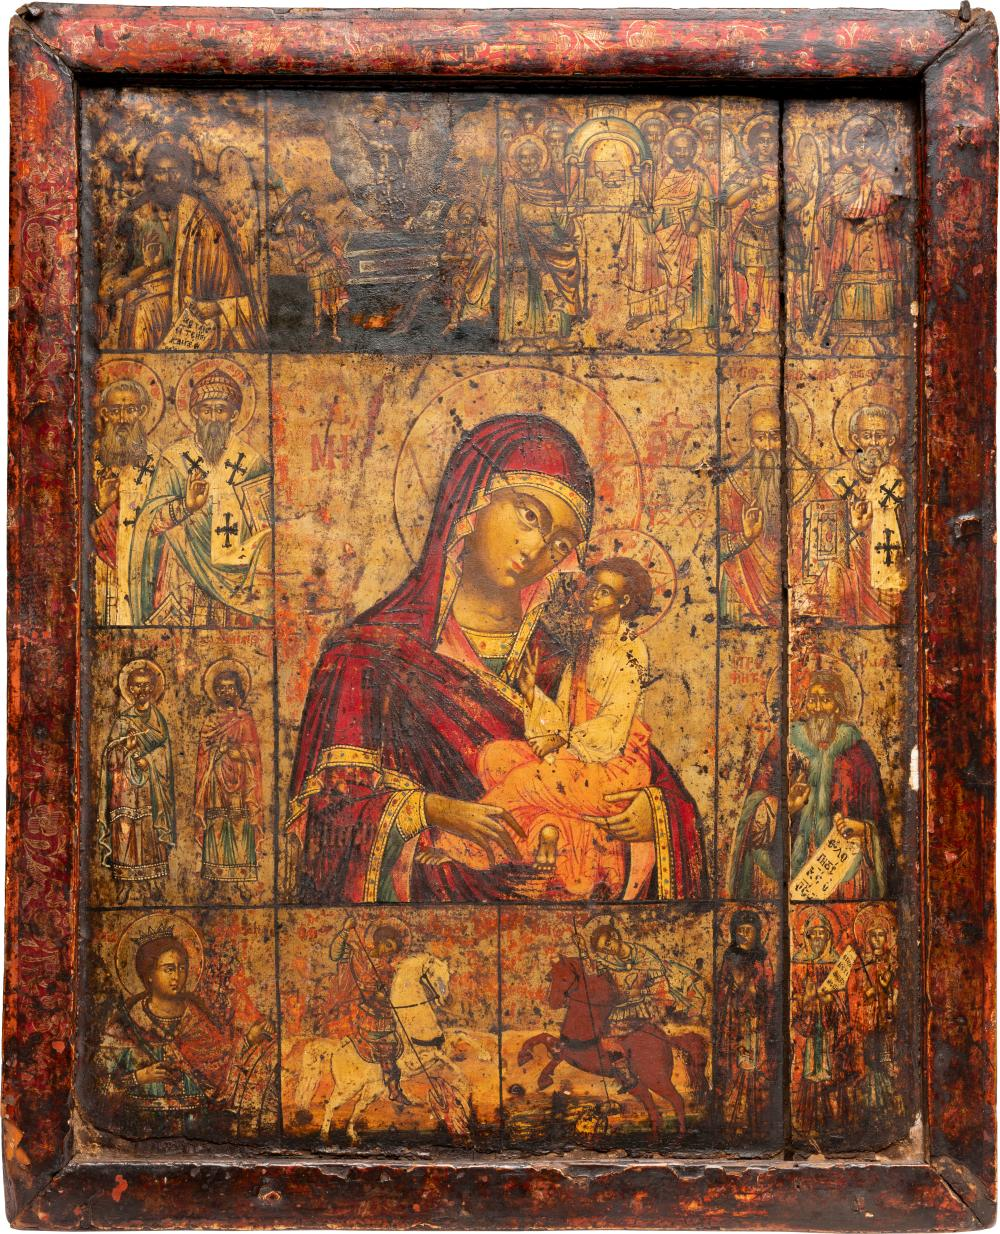 A LARGE MELCHITE ICON SHOWING THE MOTHER OF GOD AND SELECTE